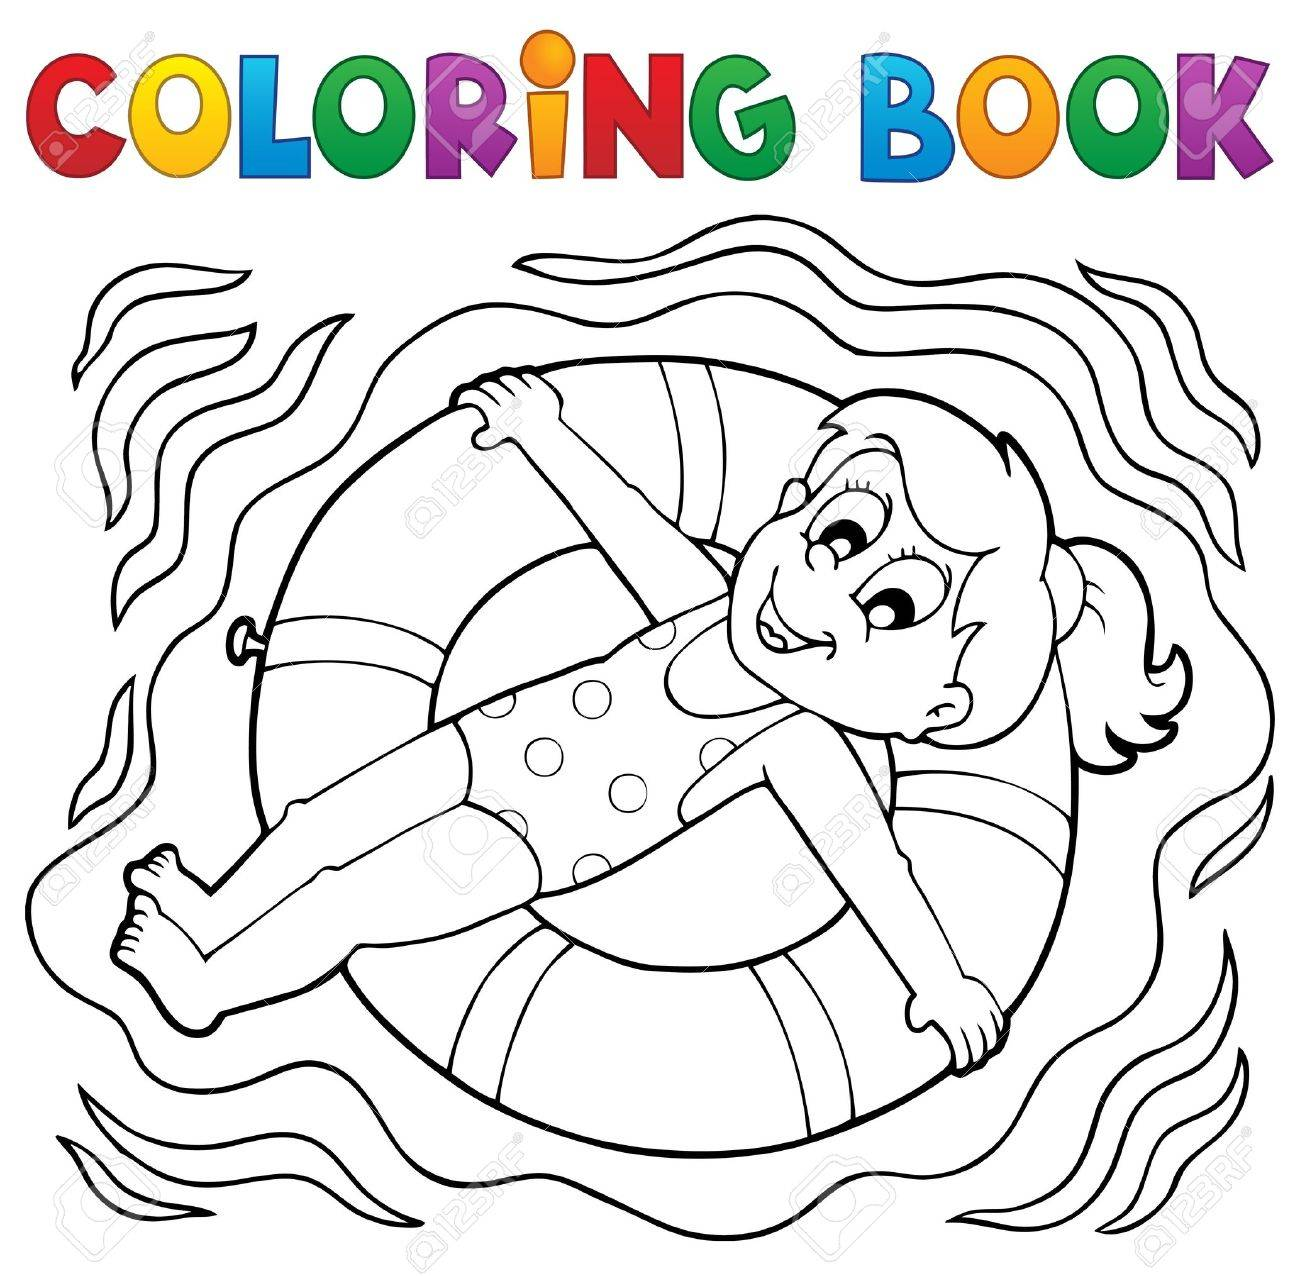 Coloring Book Water Sport Royalty Free Cliparts, Vectors, And ...